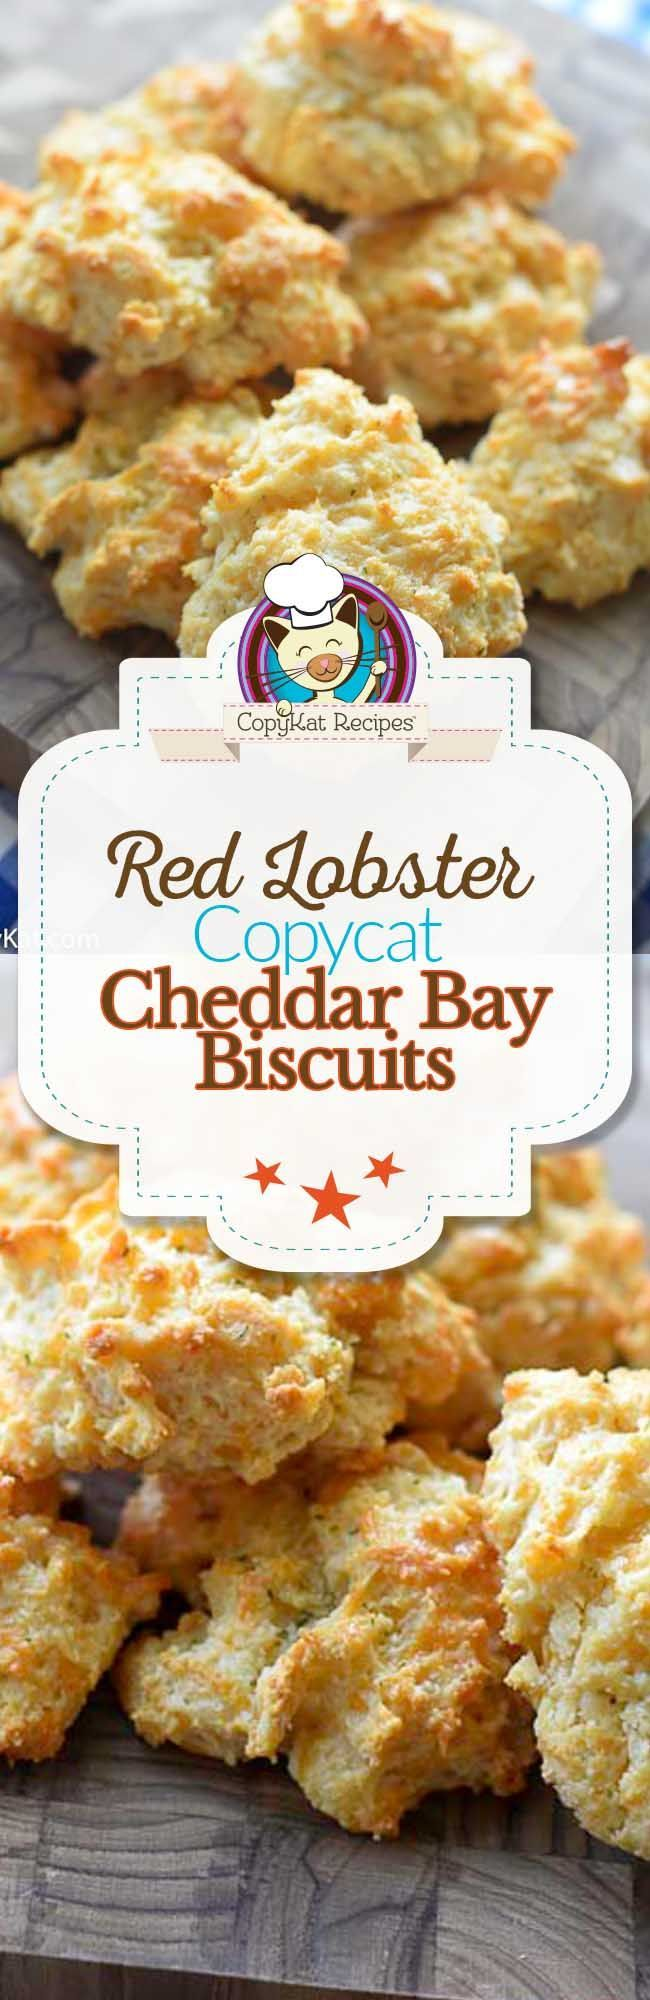 Red Lobster Cheddar Bay Biscuits Step by Step Recipe